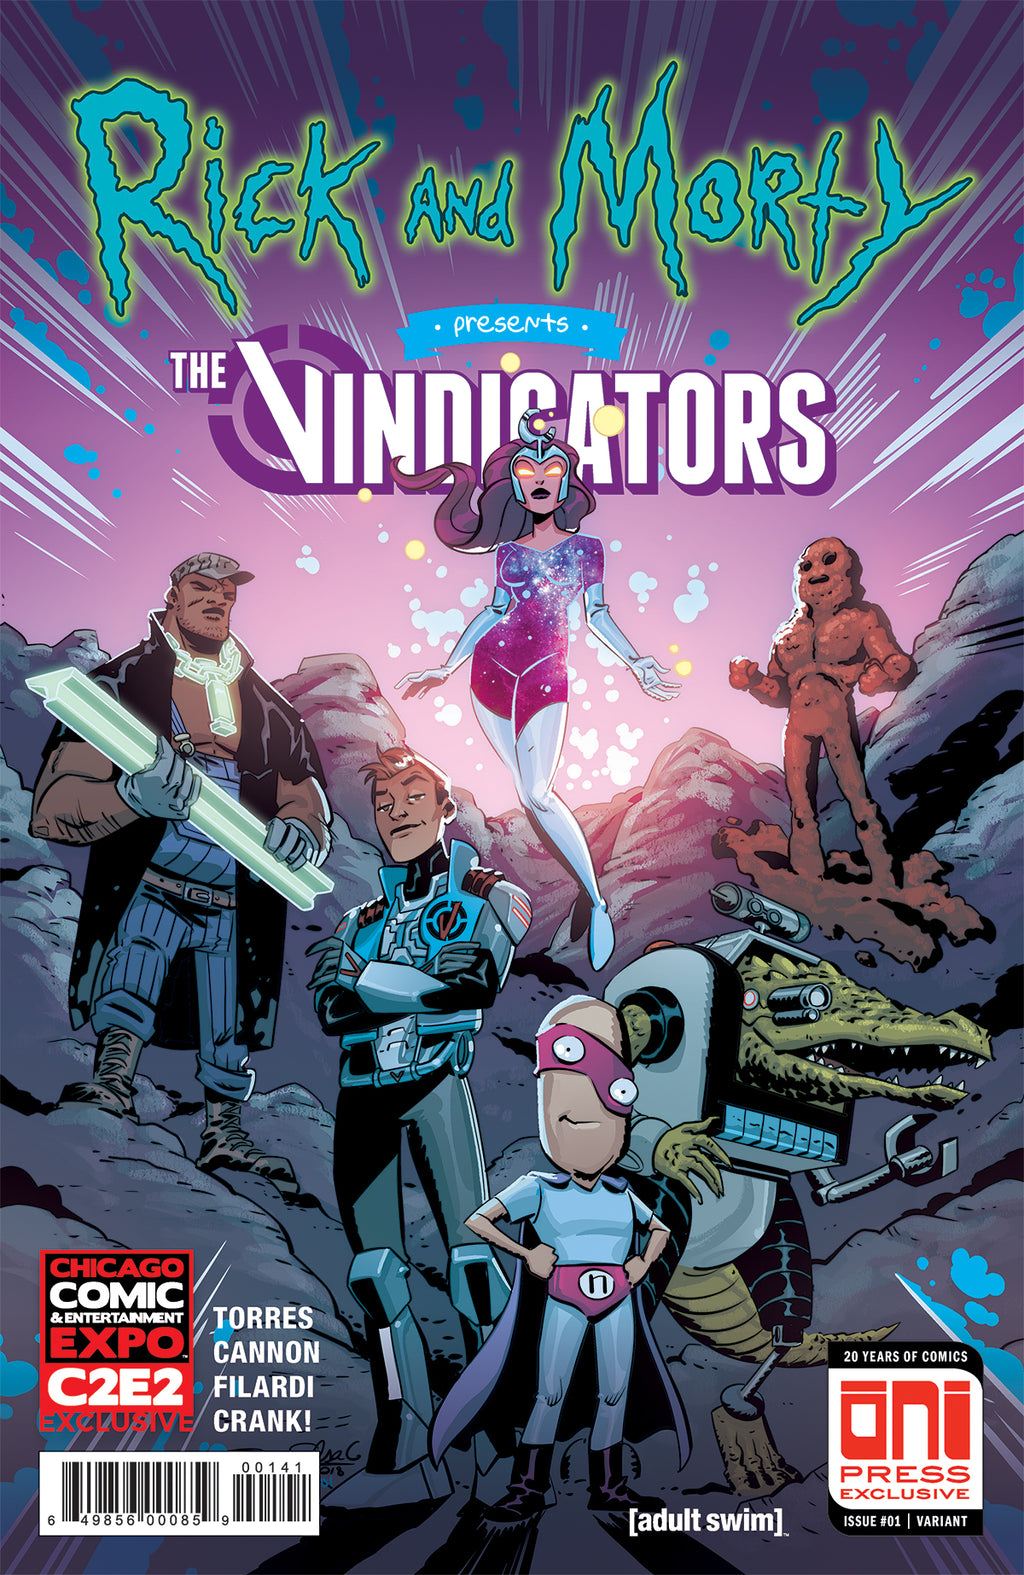 Rick and Morty Presents: The Vindicators #1 C2E2 variant